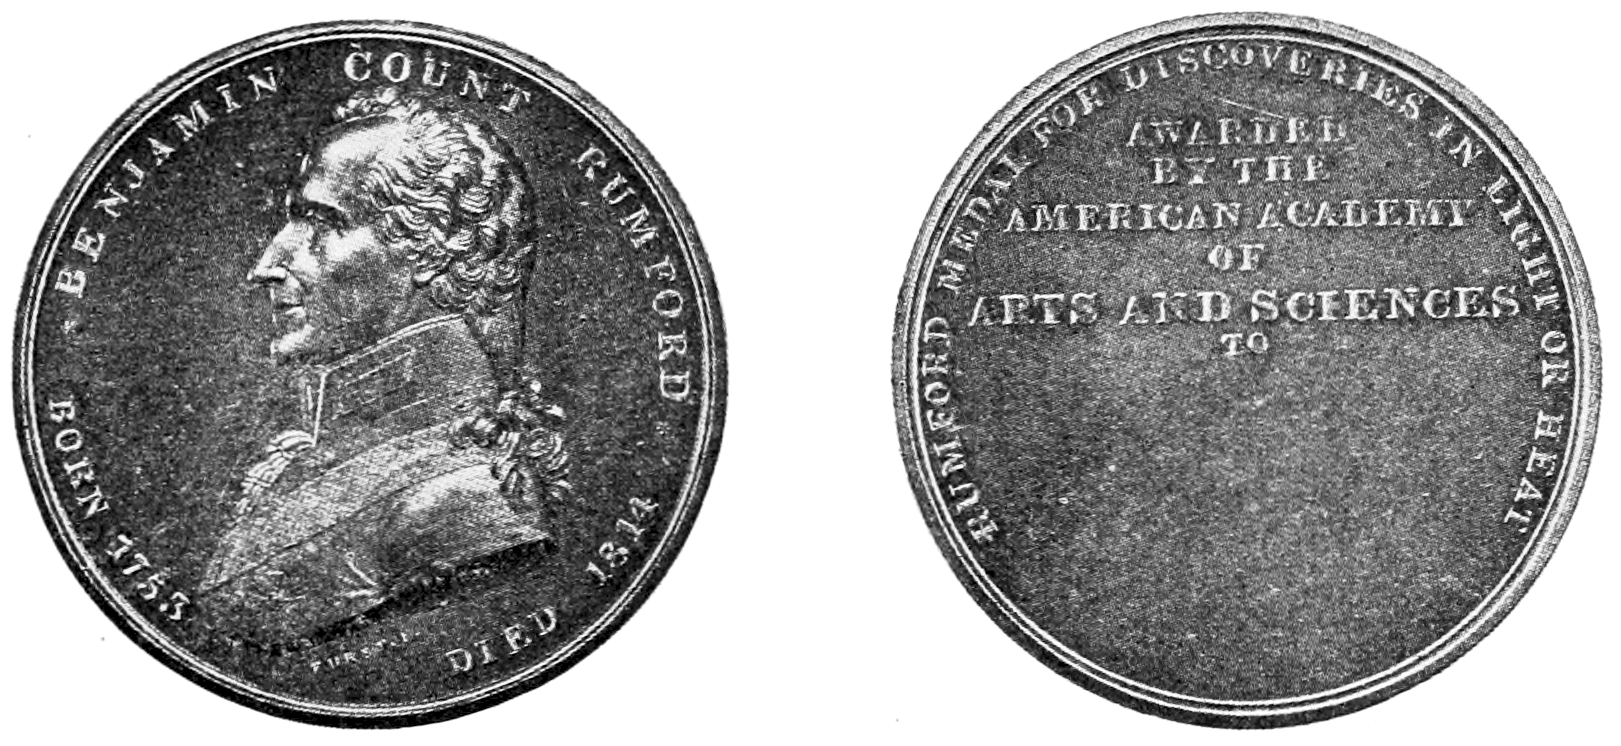 PSM V73 D043 Rumford medal of the american academy of arts and sciences.png